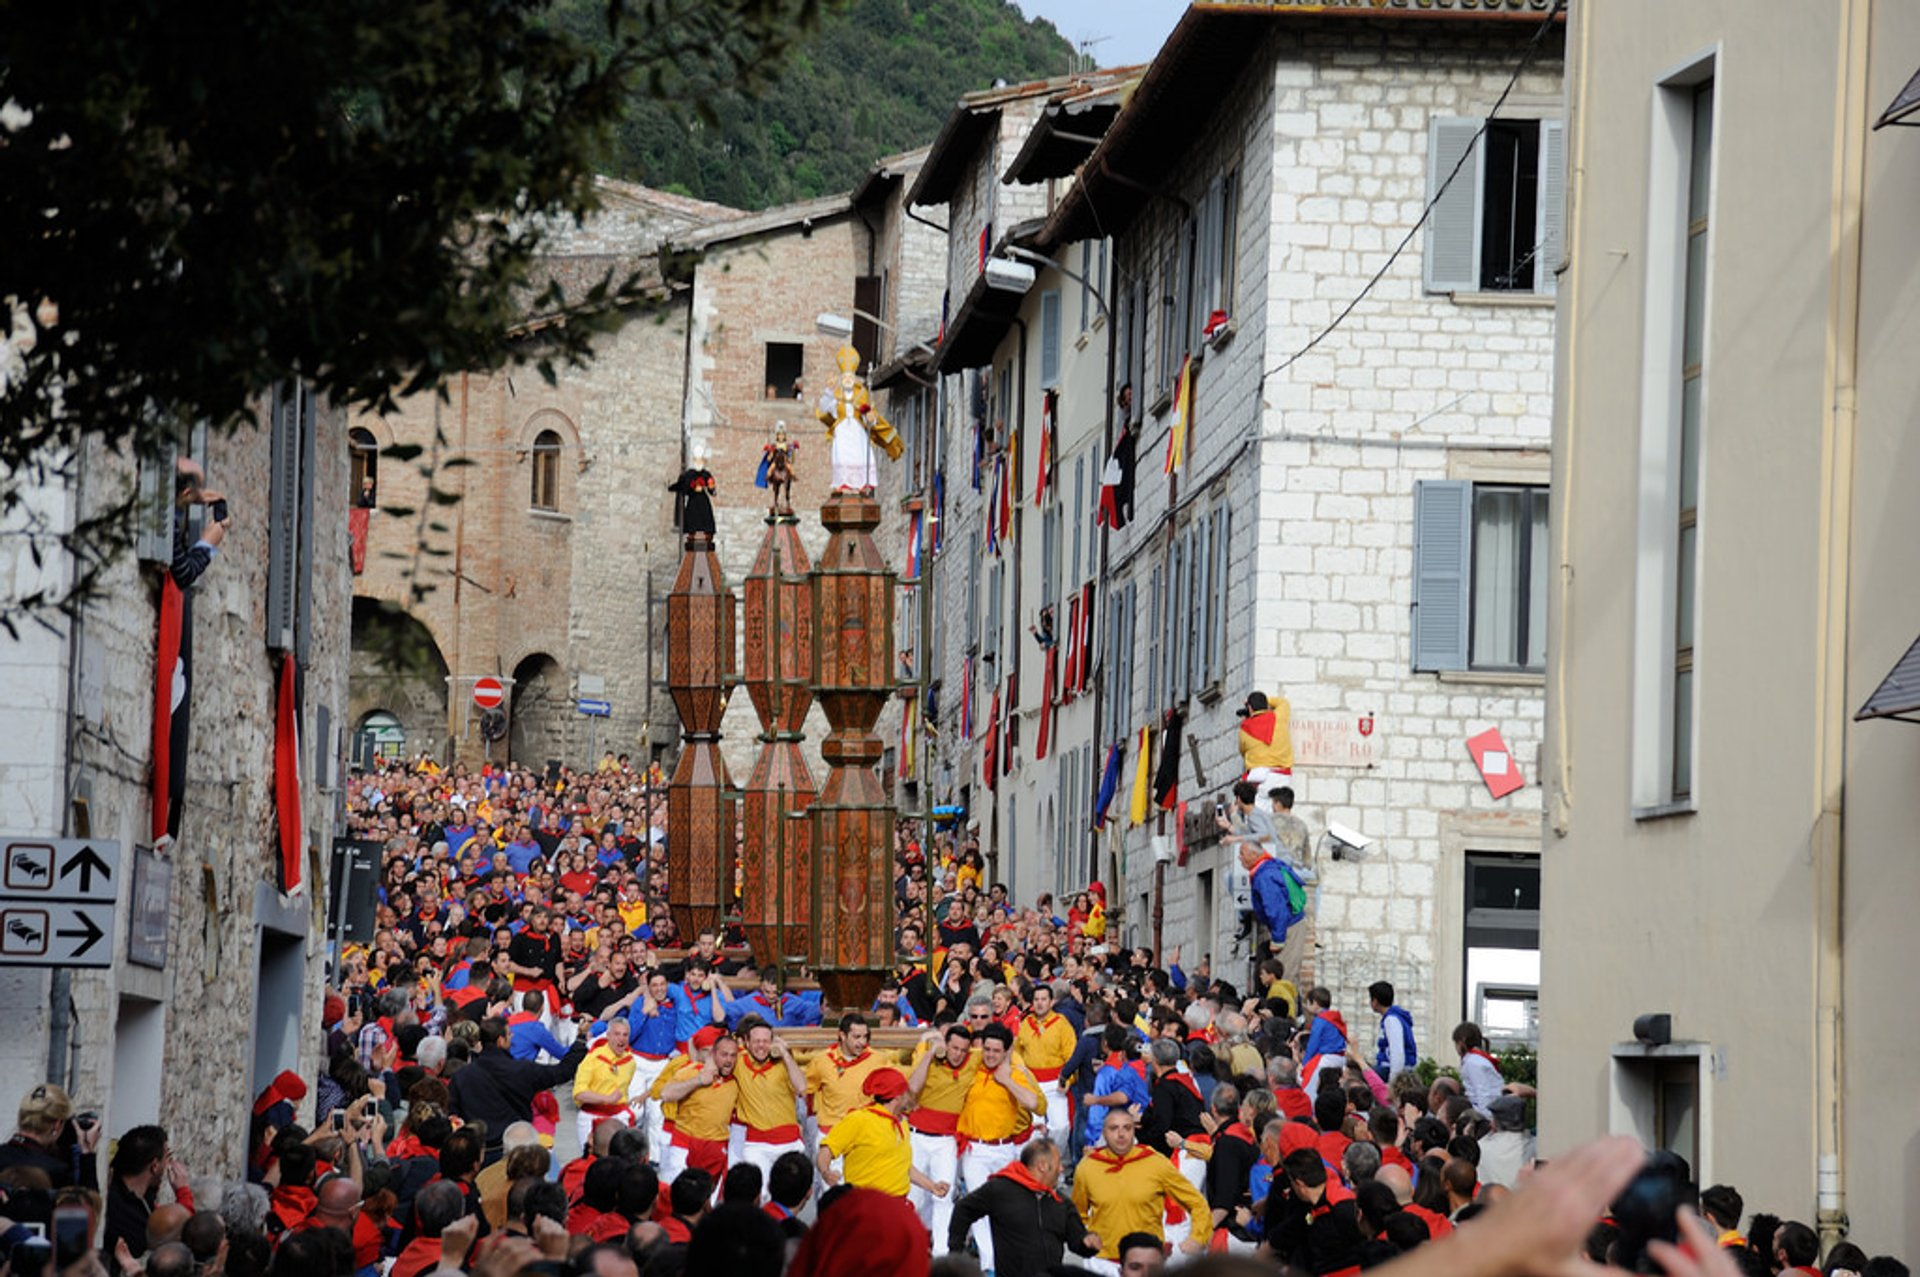 Best Candles 2020 Gubbio Festa dei Ceri (Race of the Candles) 2020 in Italy   Dates